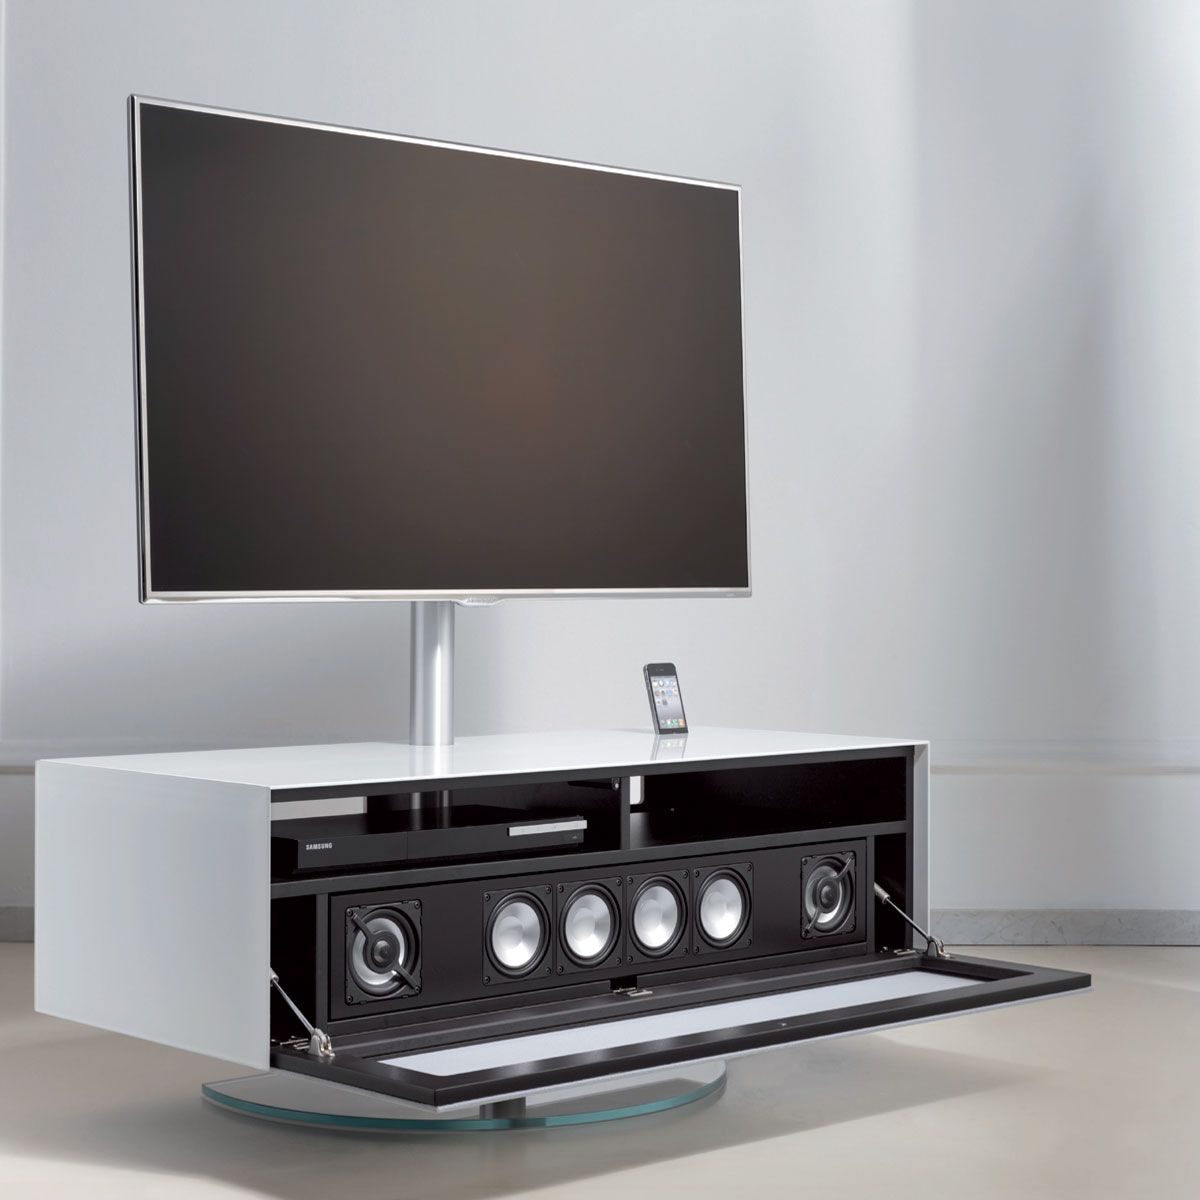 spectral brick archive tv m bel und hifi m bel guide. Black Bedroom Furniture Sets. Home Design Ideas